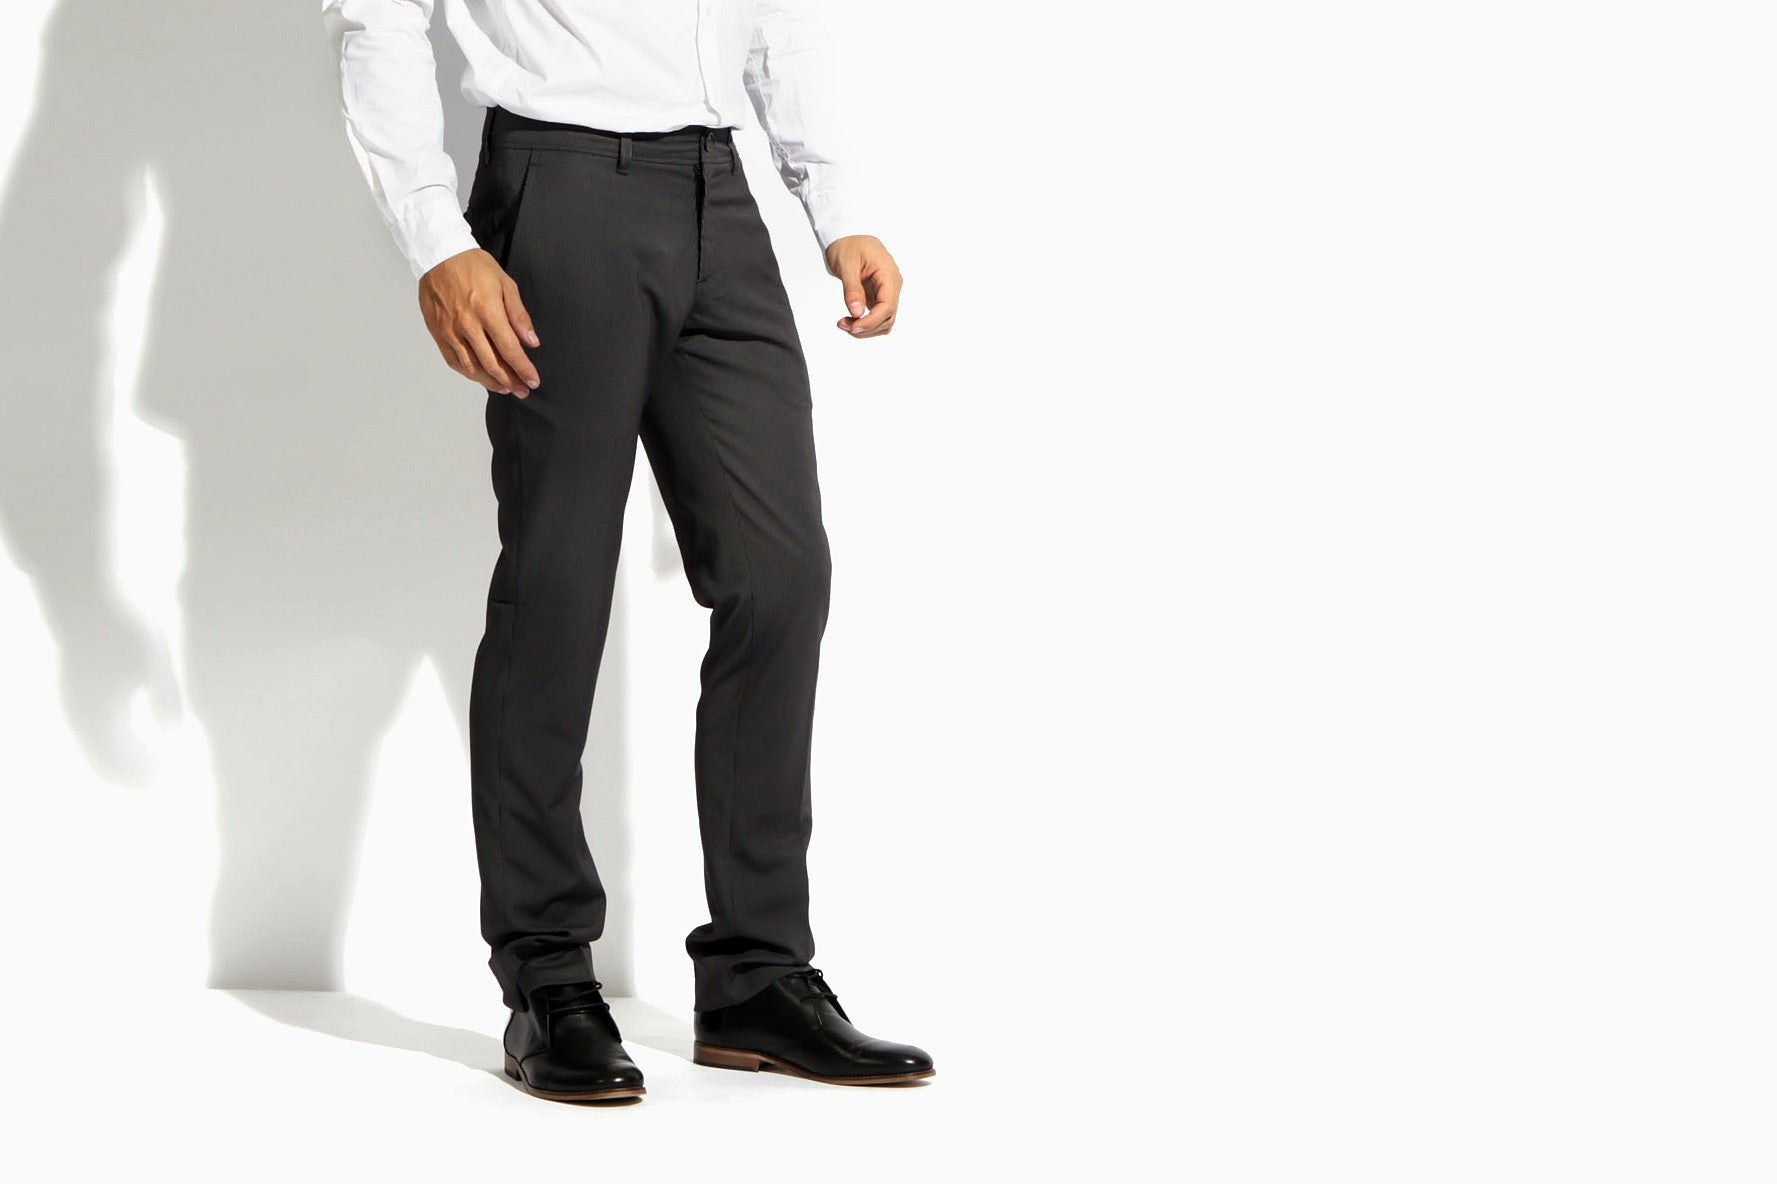 Men's The Finest Pinstripe Suit Pants (Fade To Black)